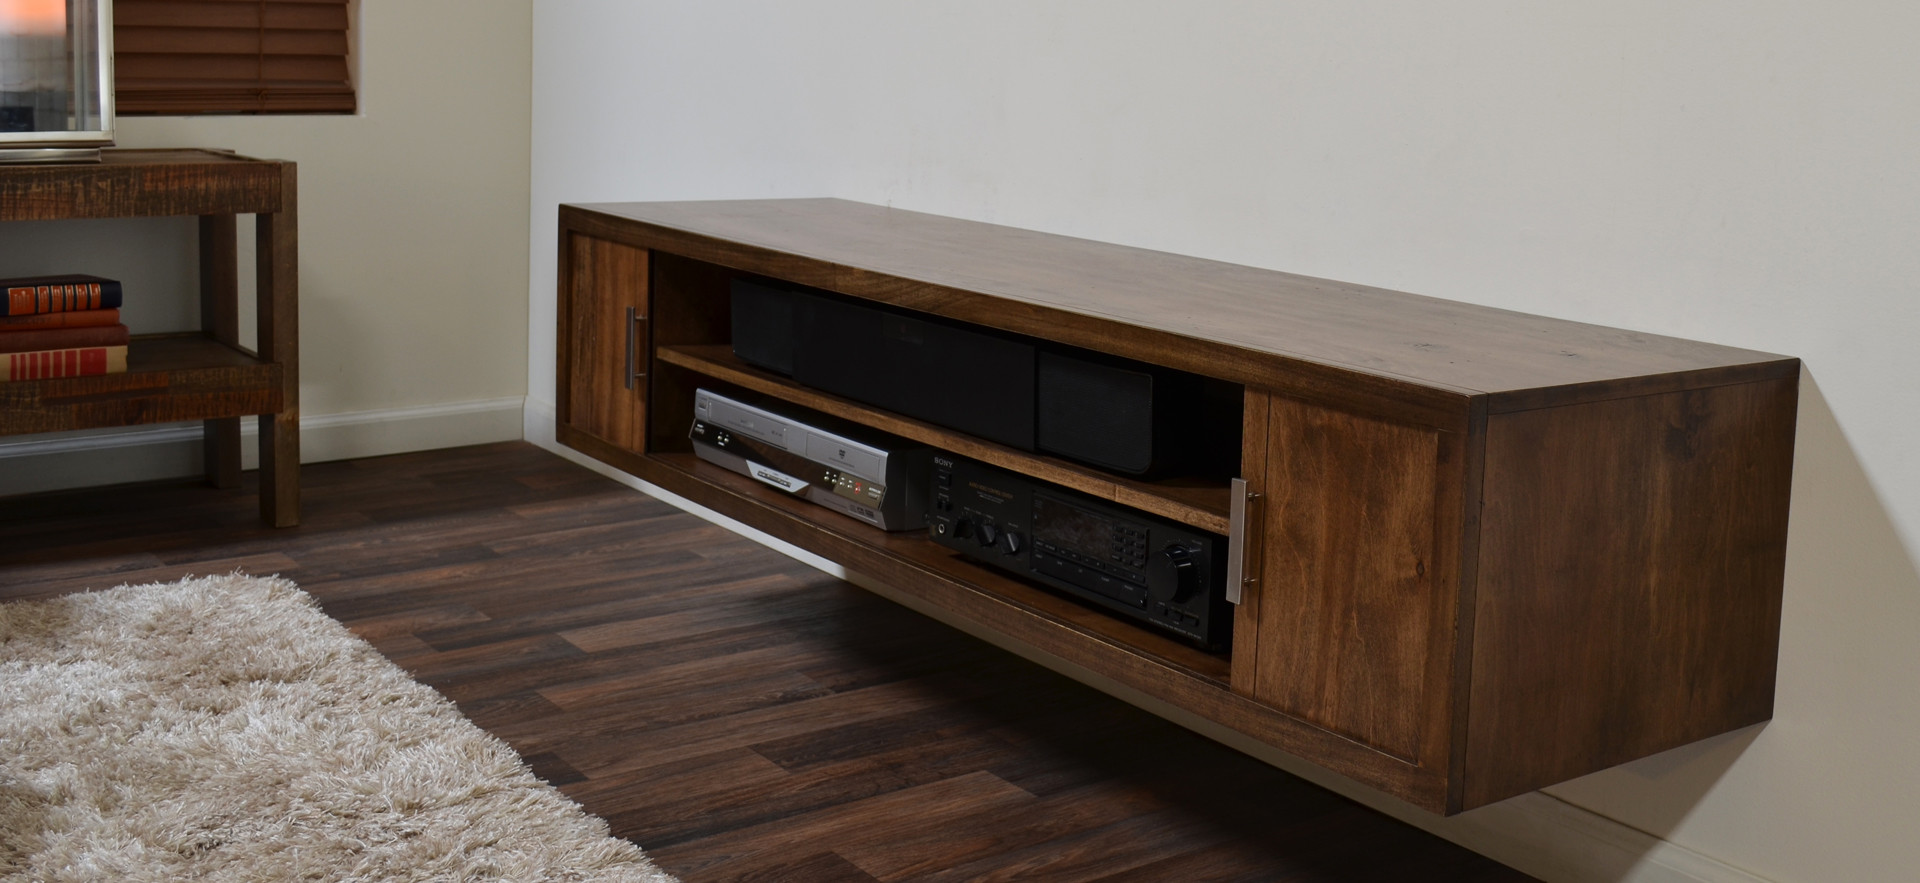 Floating media desk in rustic style some electric media units on shelves hardwood flooring idea light modern minimalist floating tv console